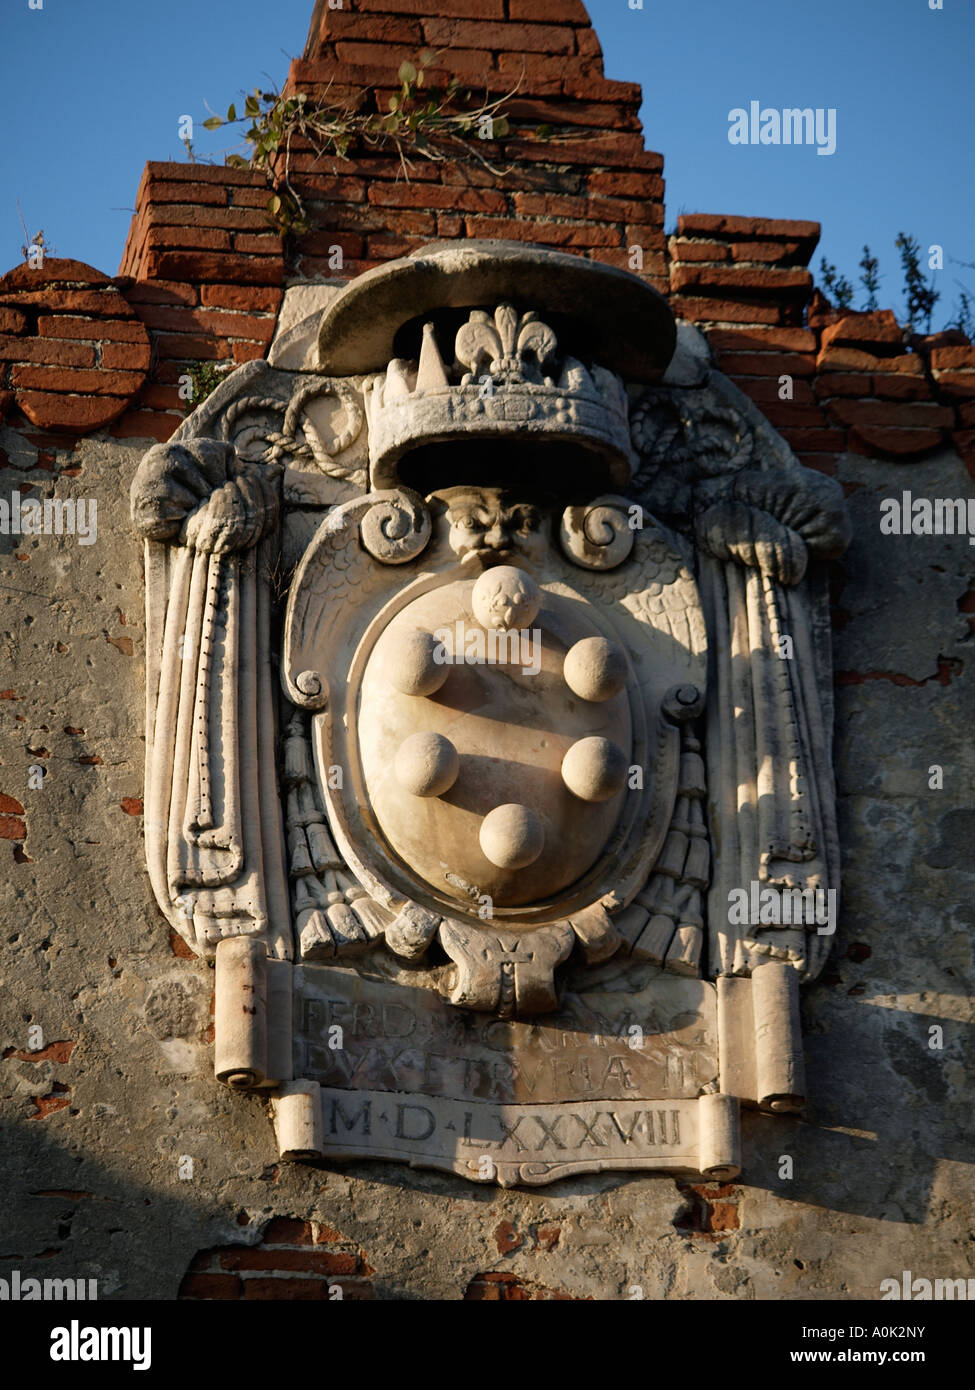 The de Medici family emblem on an old warehouse along the Arno river in Pisa Tuscany Italy - Stock Image